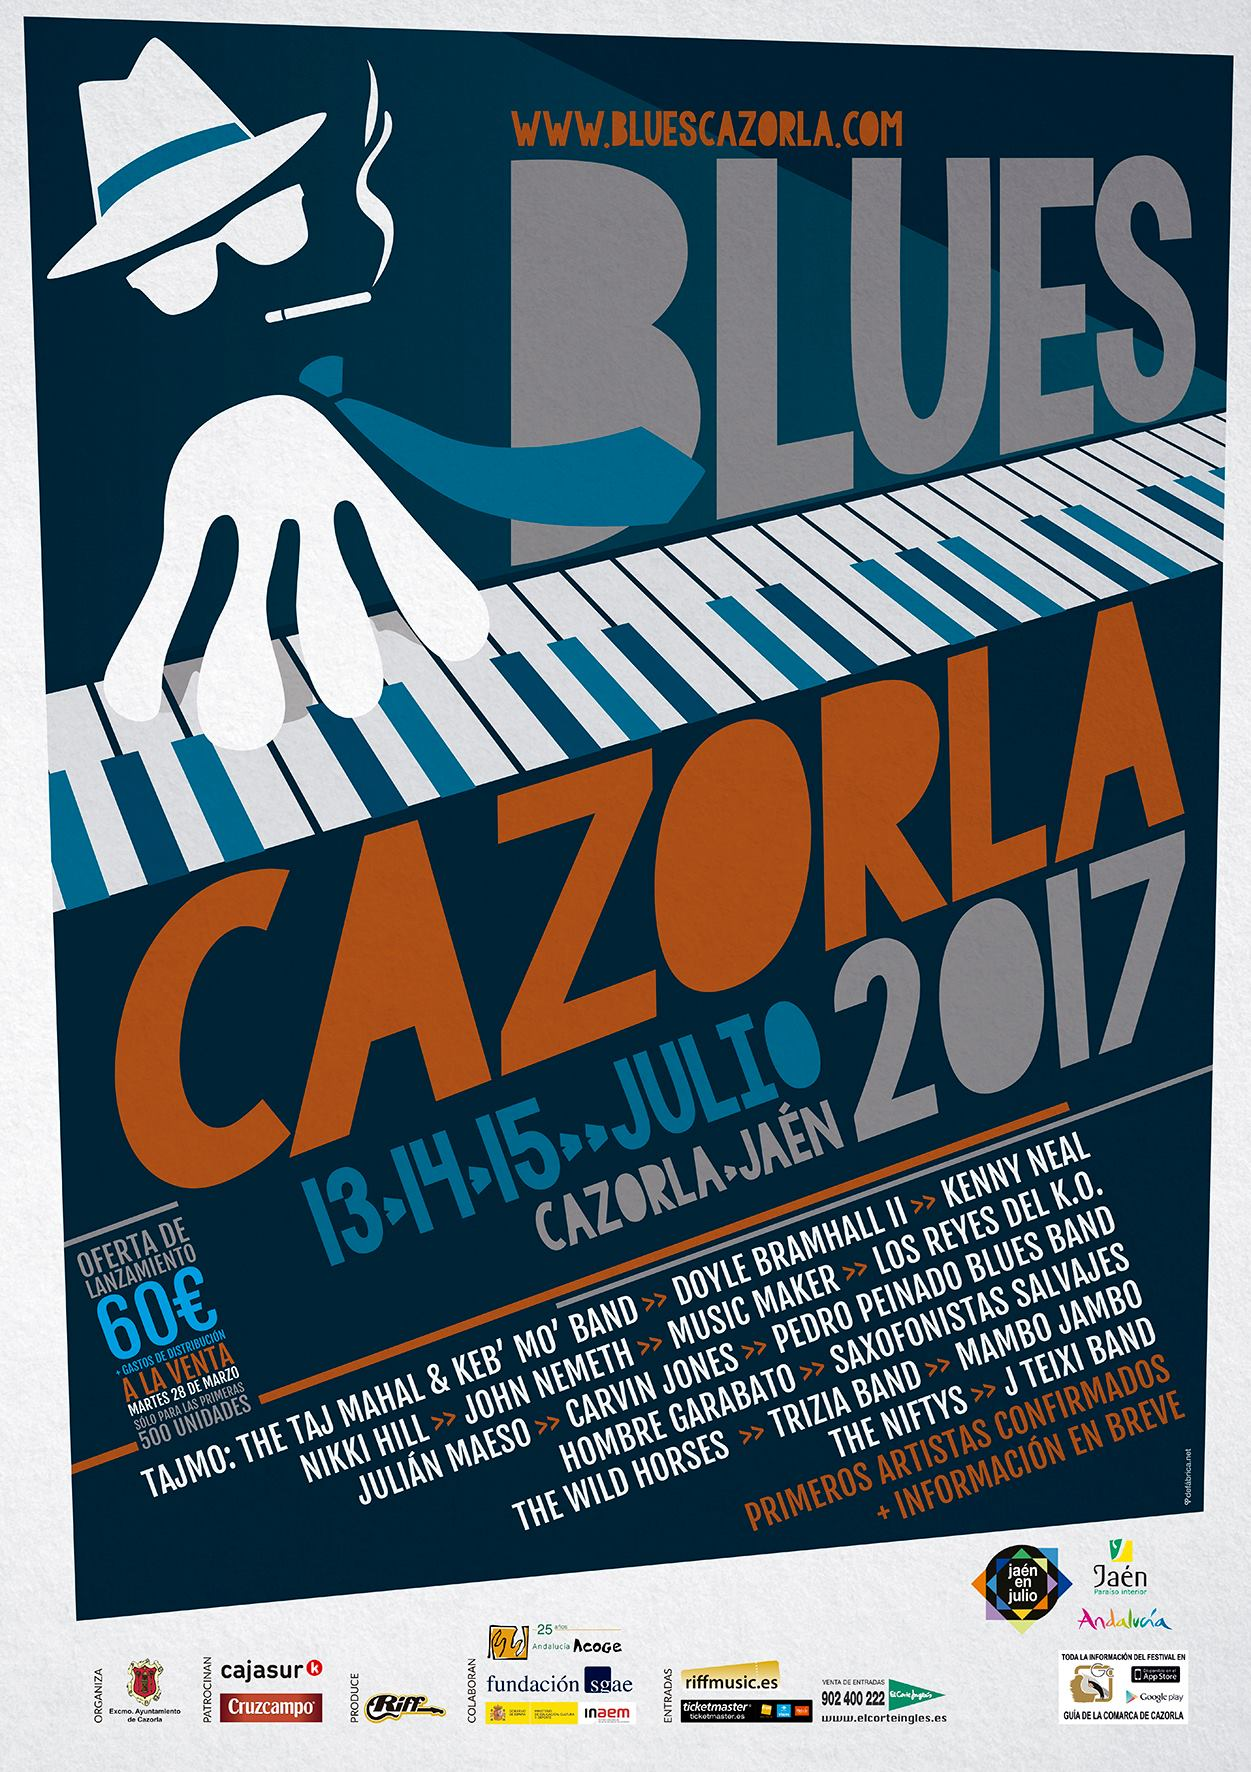 Blues Cazorla Jaén24h